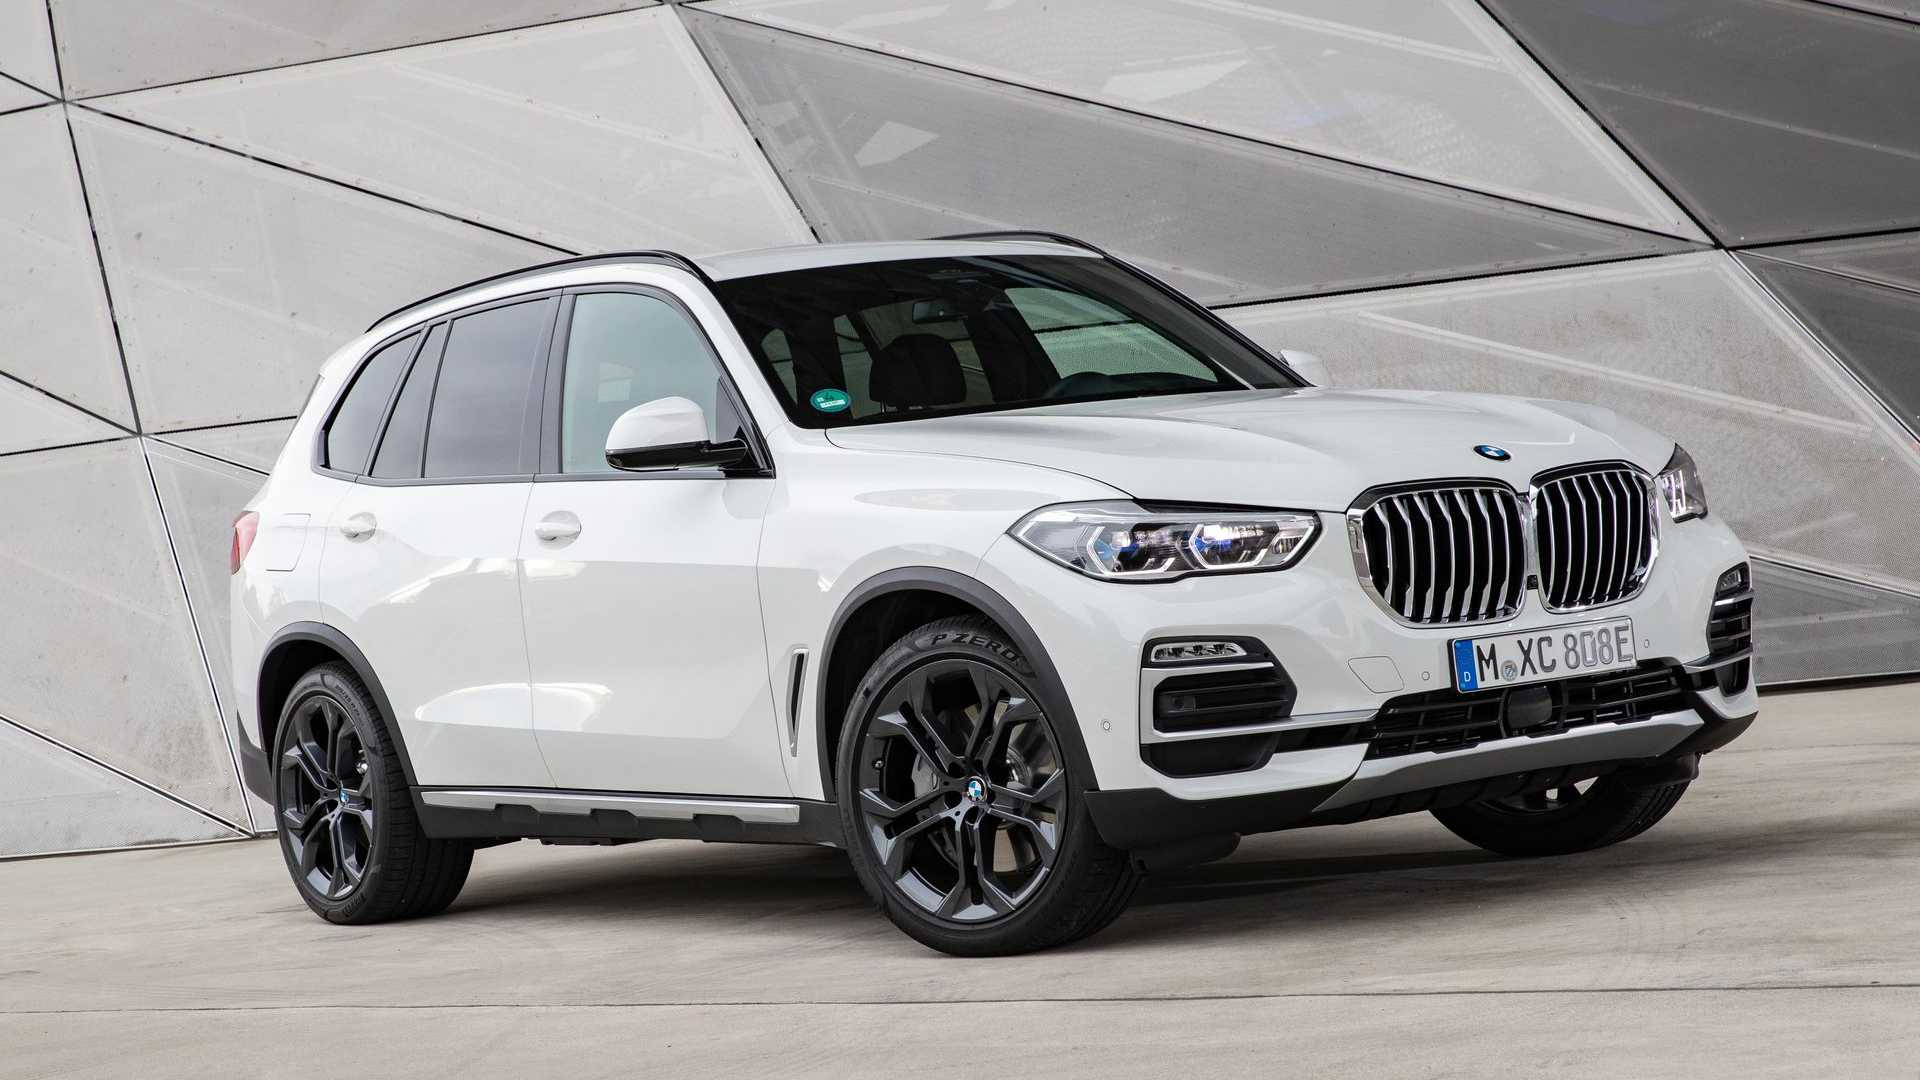 2021 Bmw X5 Xdrive45e Gets Official Epa Range Rating Of 31 Miles On Electric